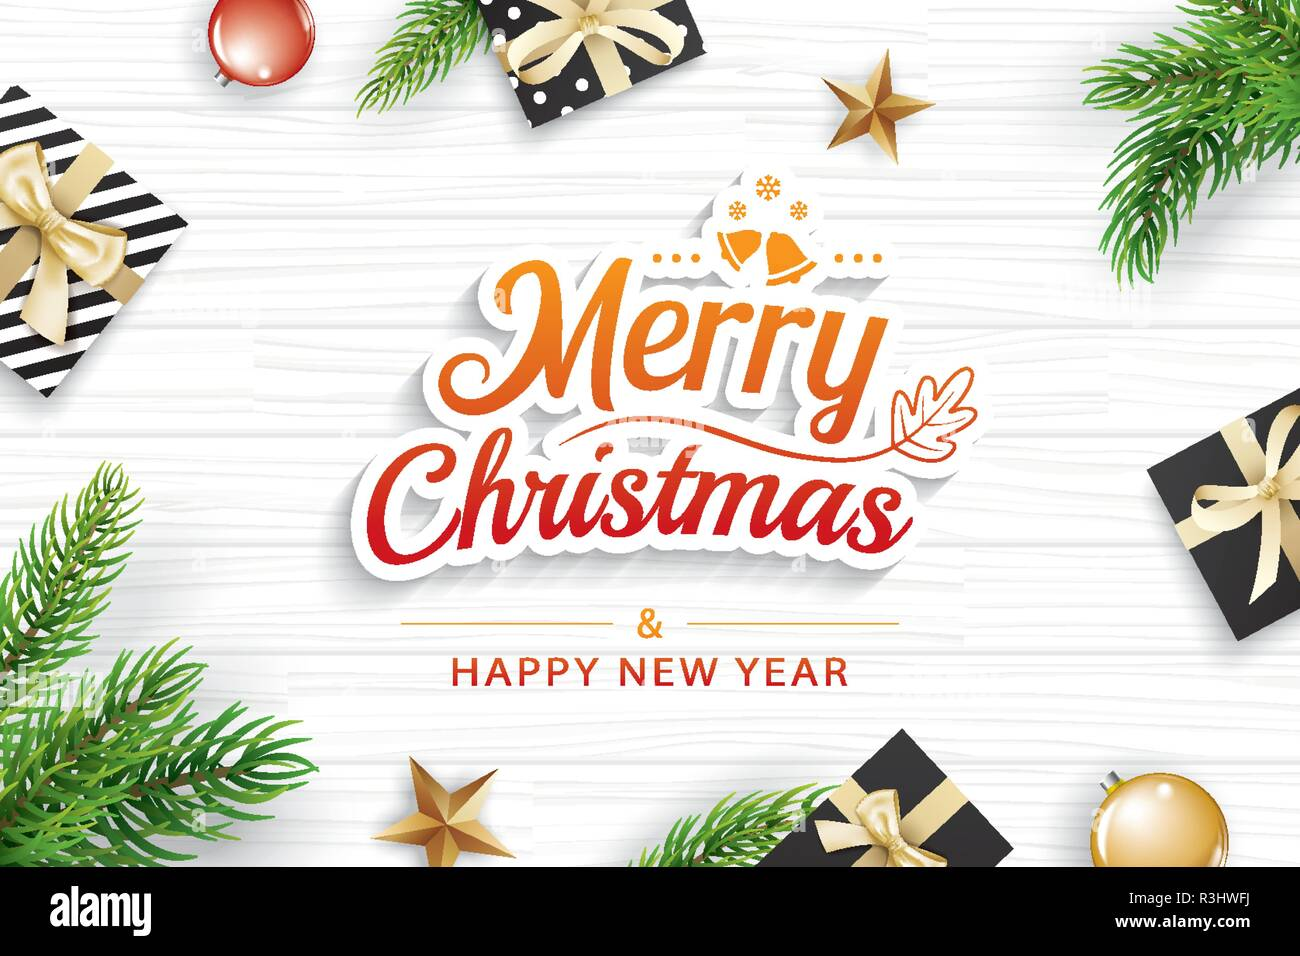 Christmas greeting card with fir branch on white wooden background. Vector illustration happy new year. Use for banner, poster. - Stock Vector